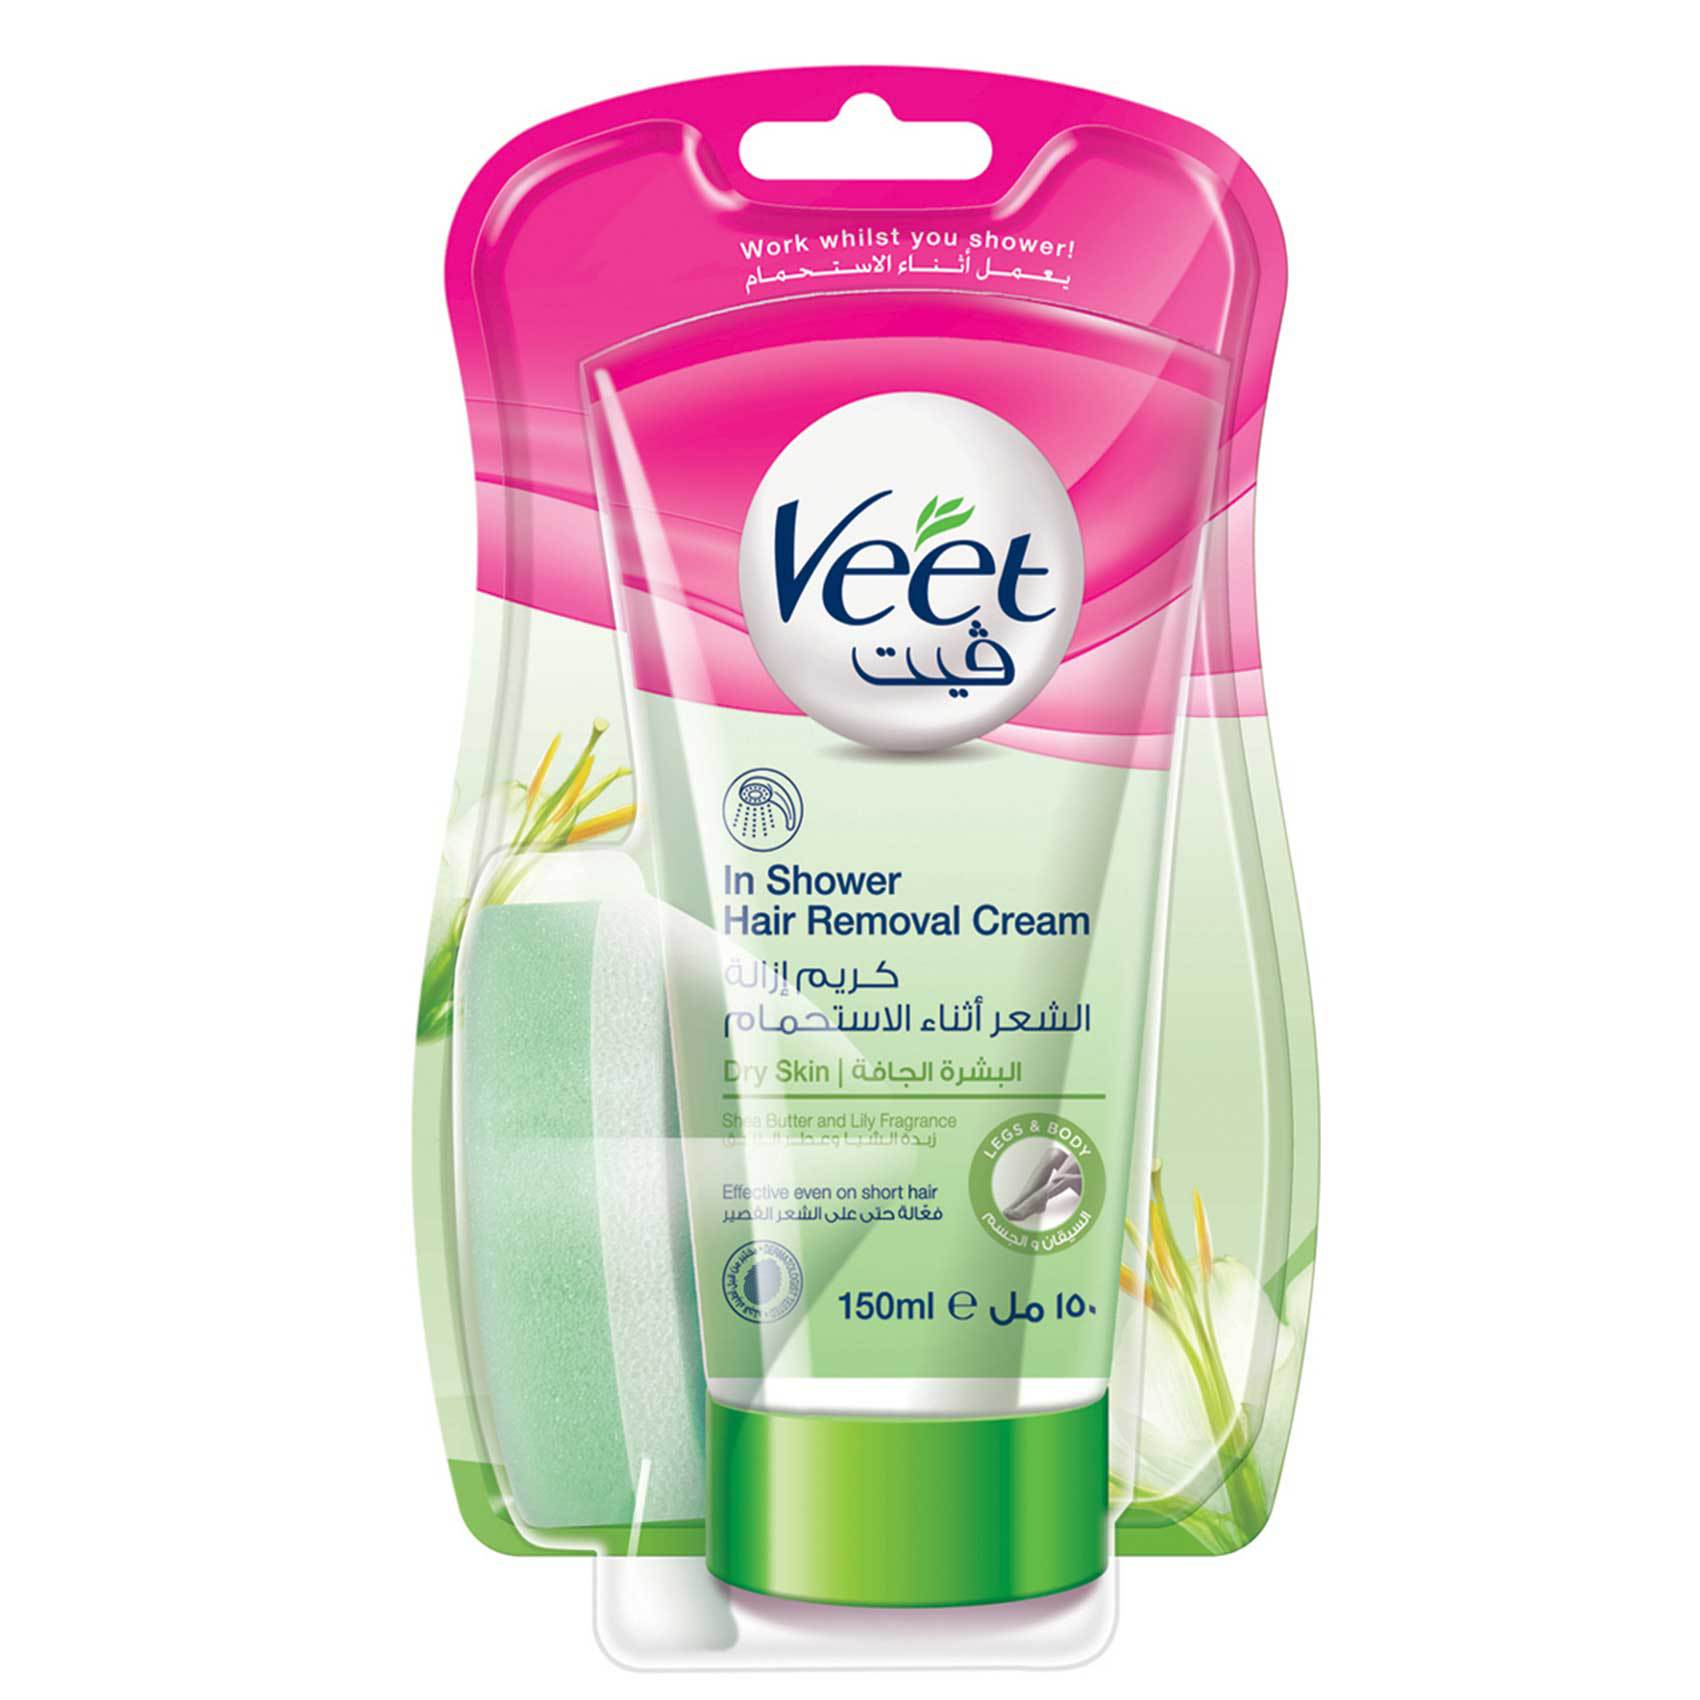 VEET HAIR RMV IN SHWR CRM ALOE 150M